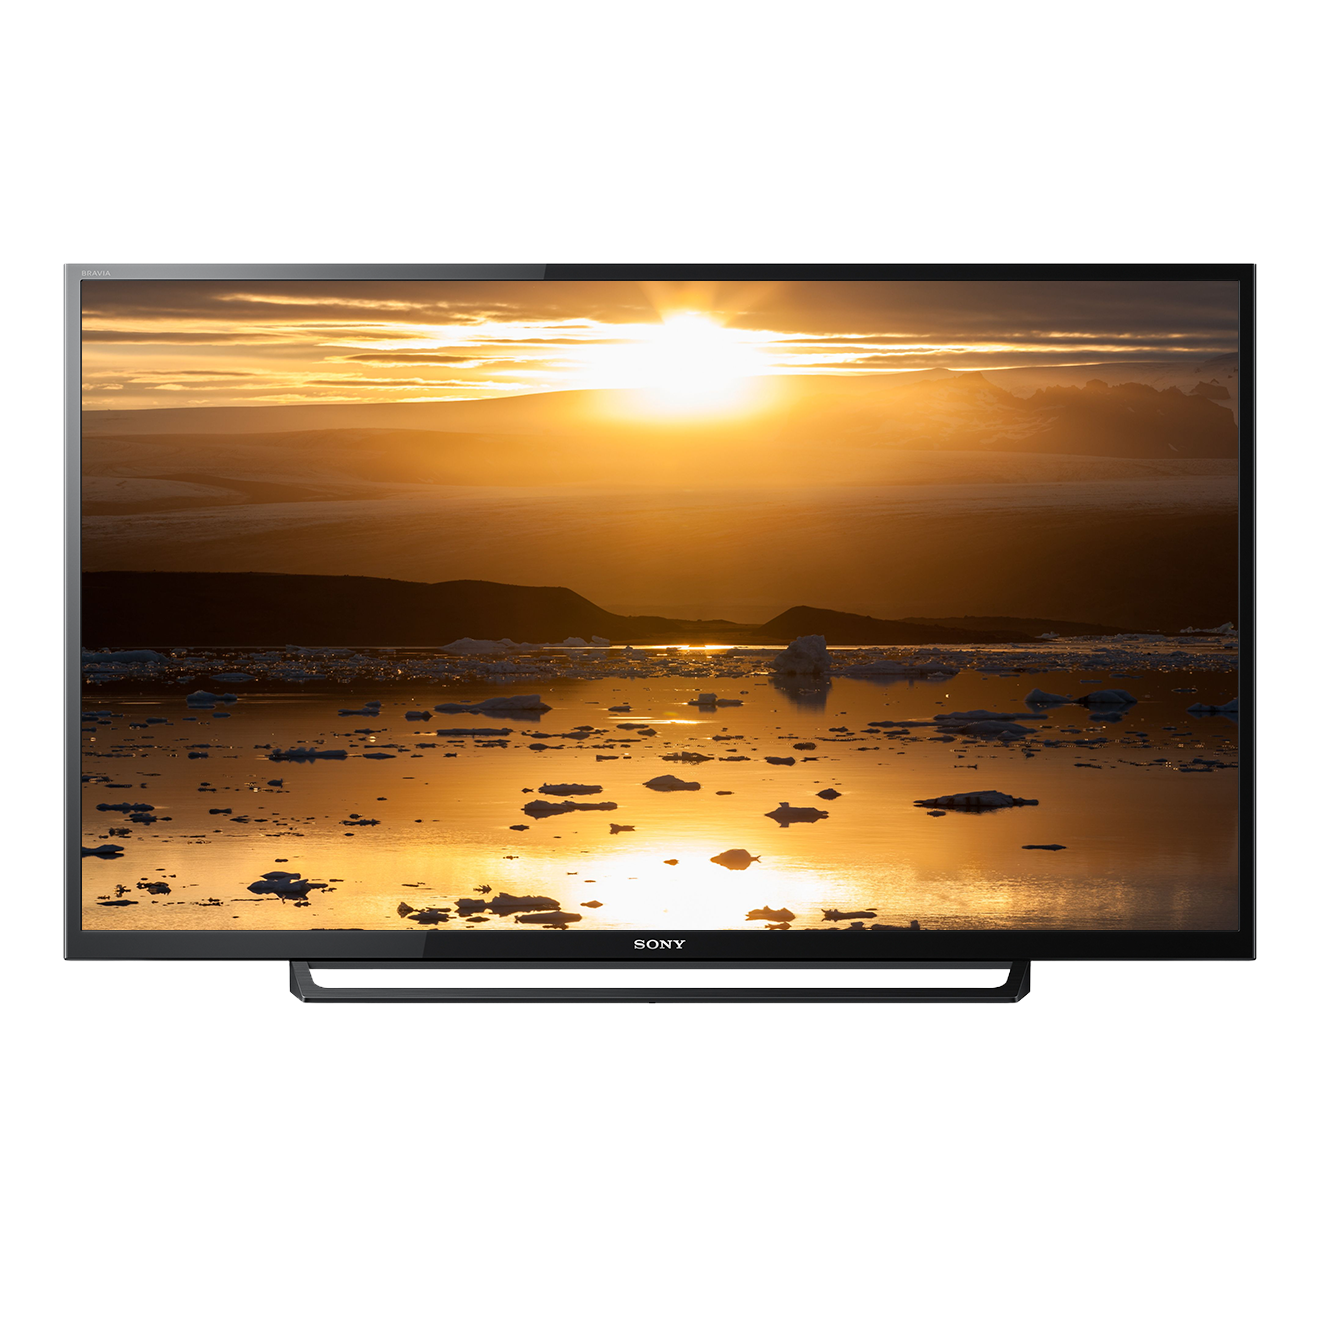 Телевизор Sony KDL 32RE 303 телевизор full hd sony kdl 49wd757